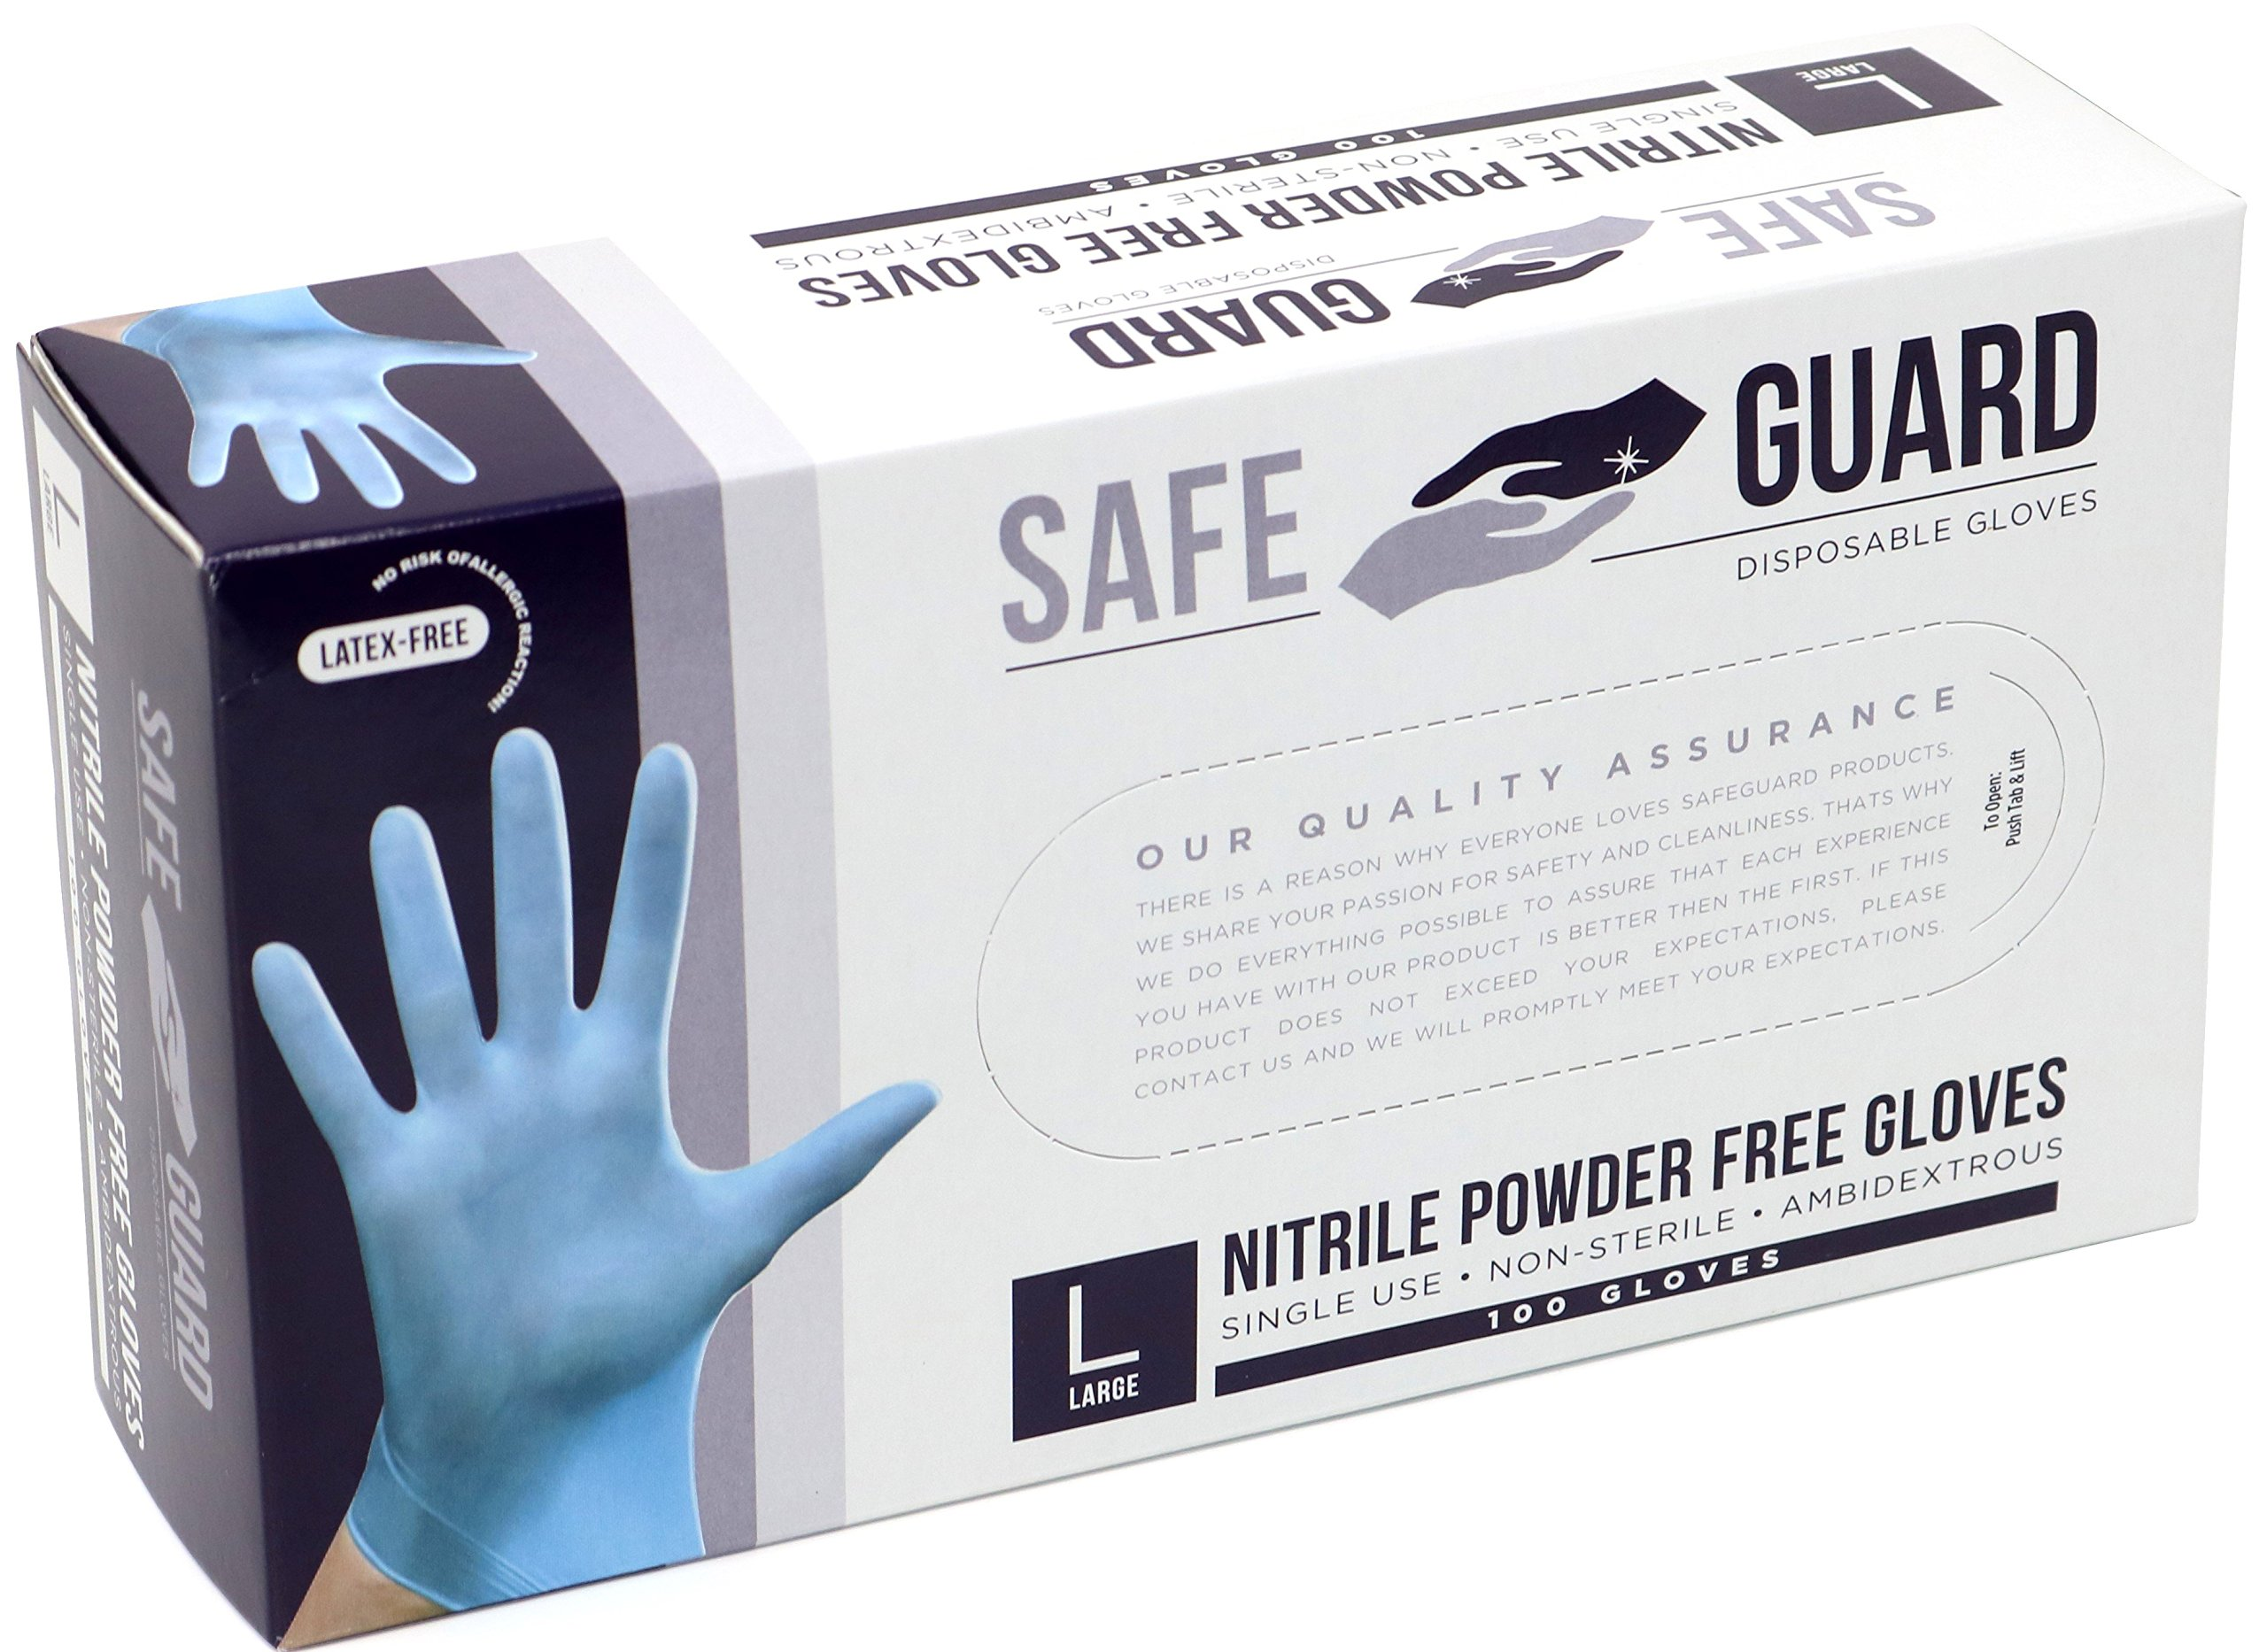 SAFEGUARD Nitrile Powder Free Gloves, Blue, Large, 1000 Count